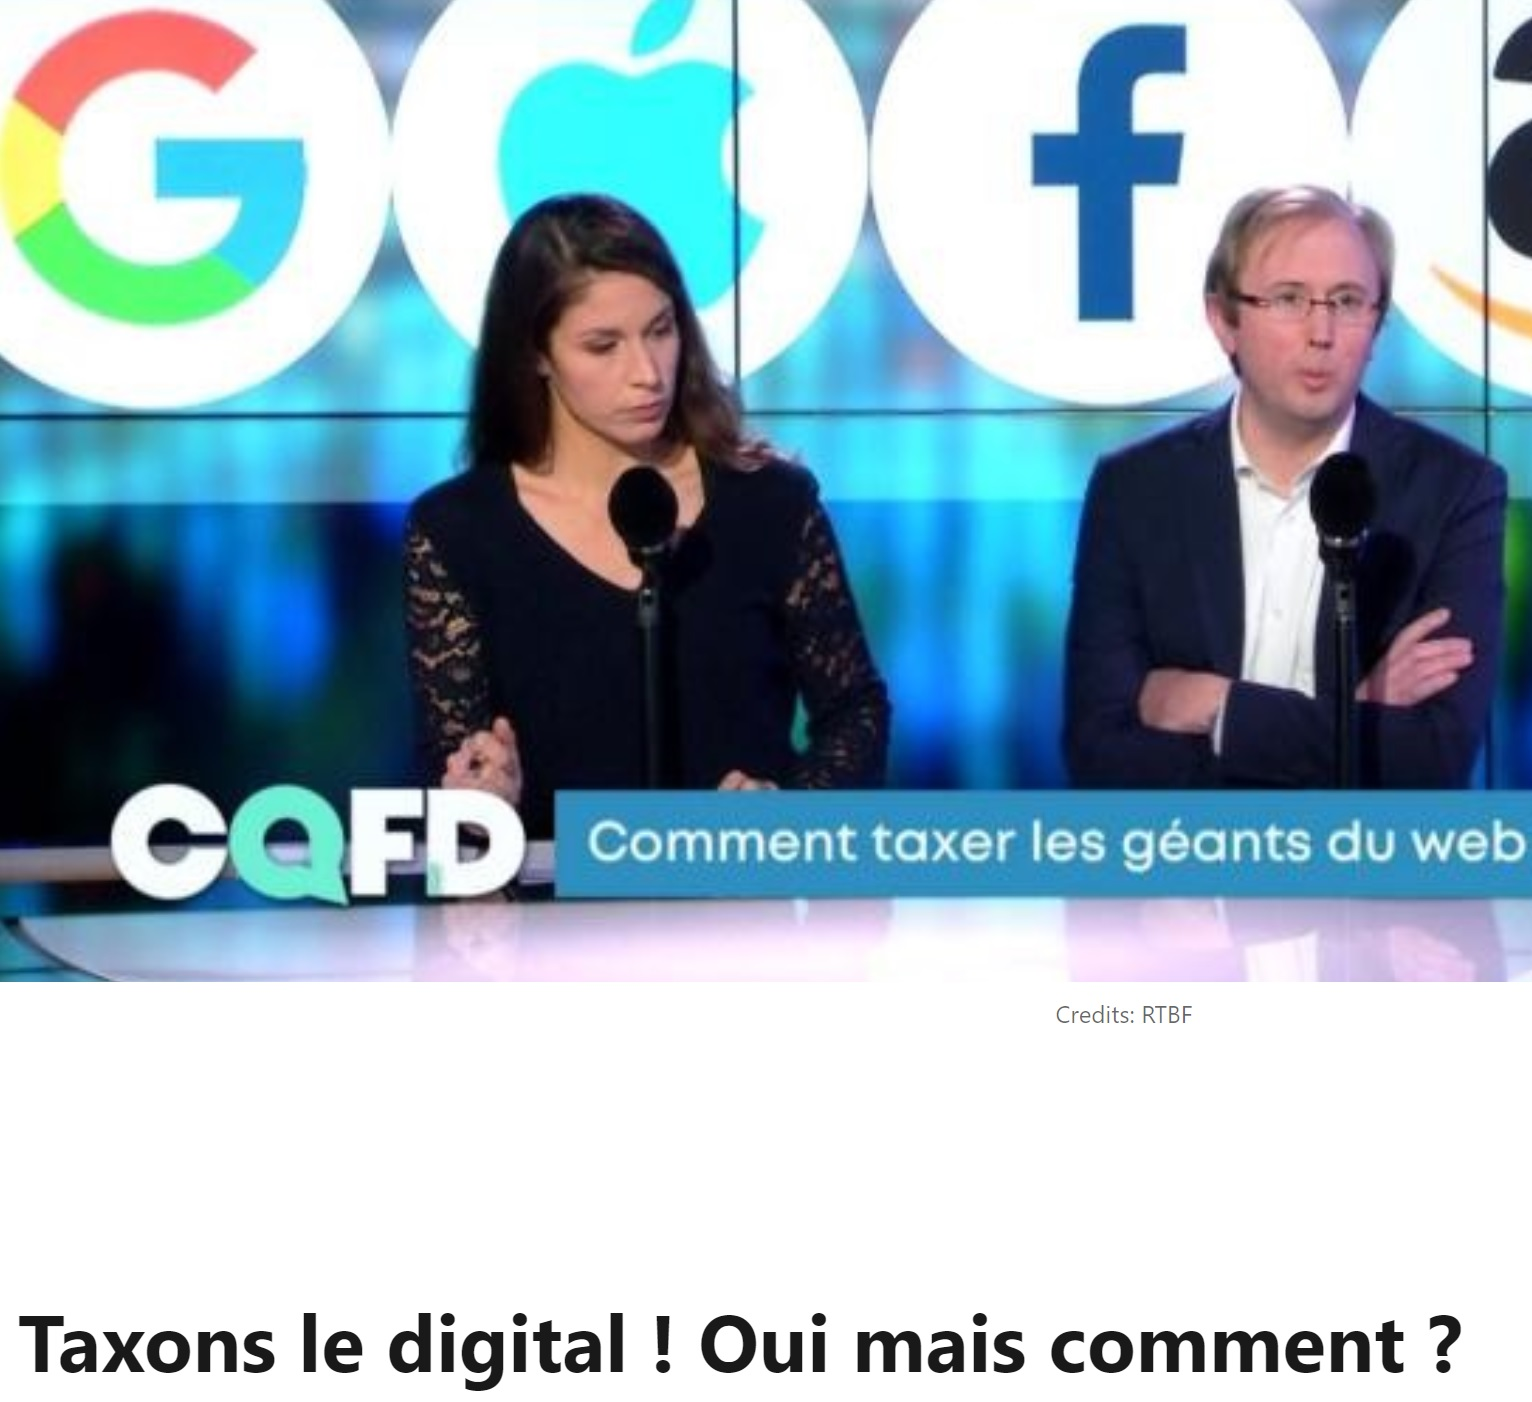 Taxons le digital ! Oui mais comment ? (on LinkedIn)